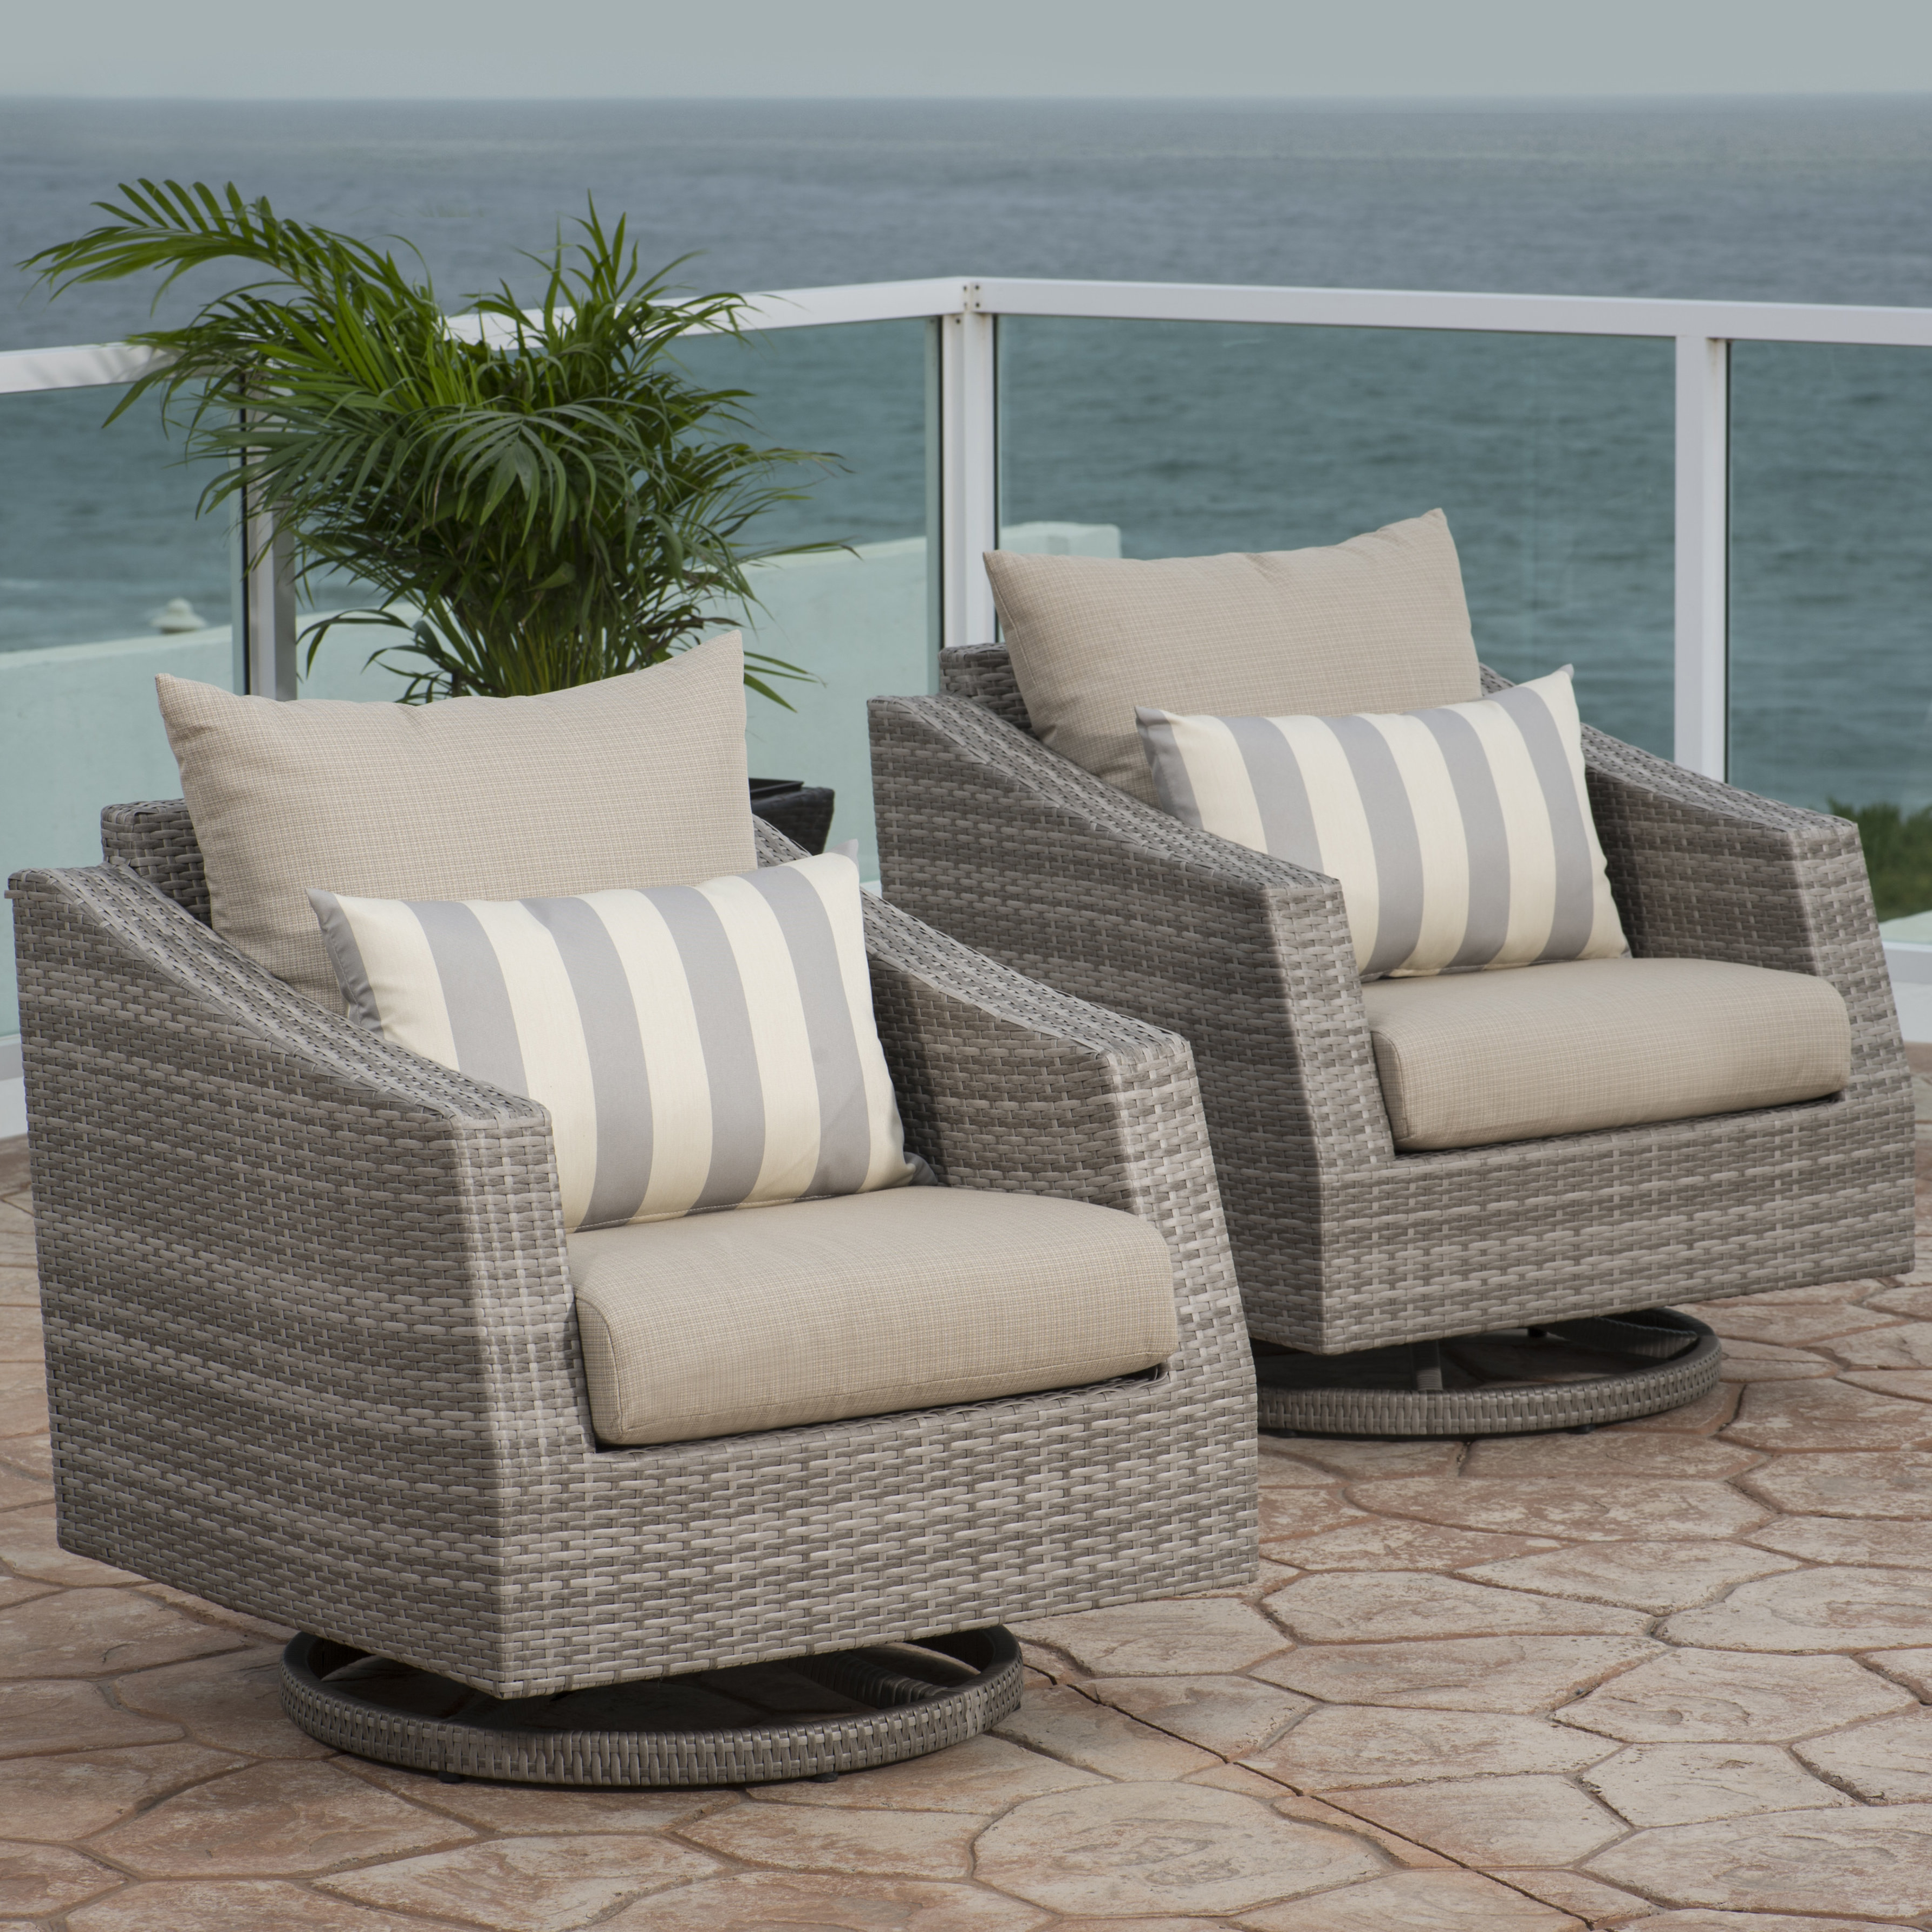 Best And Newest Castelli Patio Sofas With Sunbrella Cushions Pertaining To Castelli Swivel Patio Chair With Sunbrella Cushions (View 1 of 20)